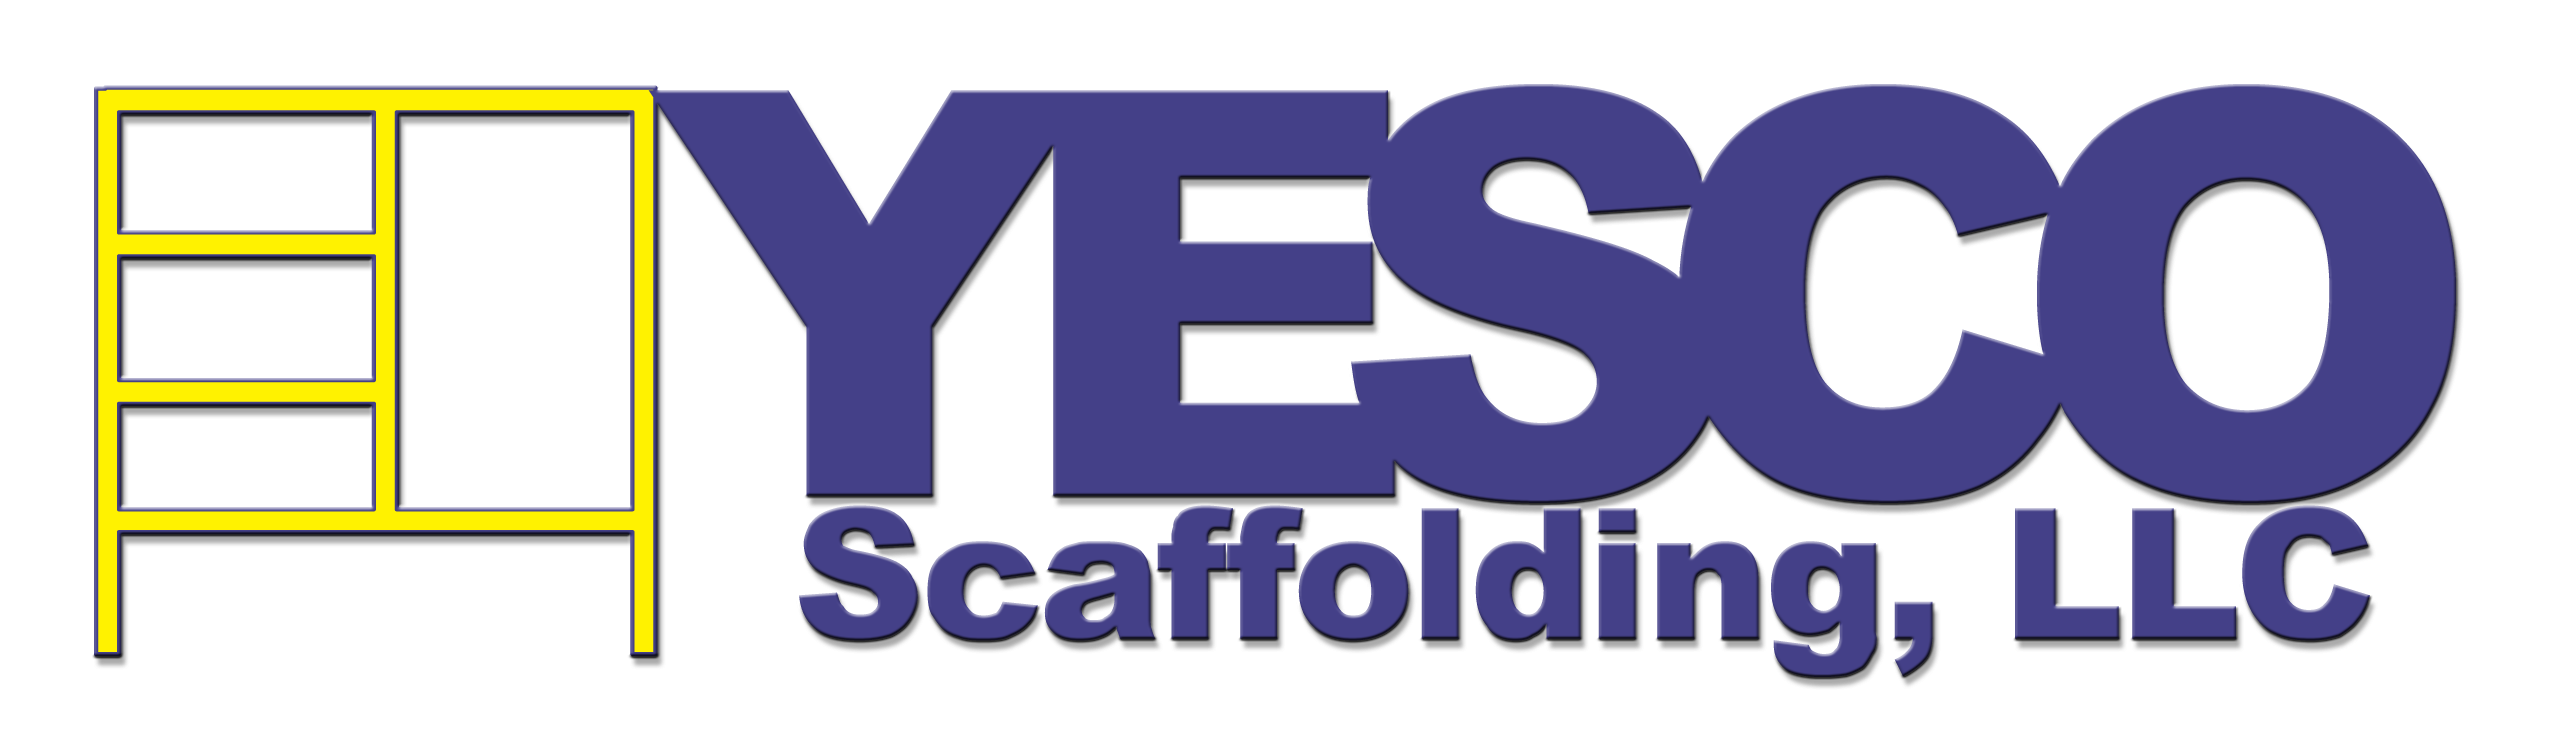 Yesco Scaffolding and Equipment Rentals | Panama City, FL Logo